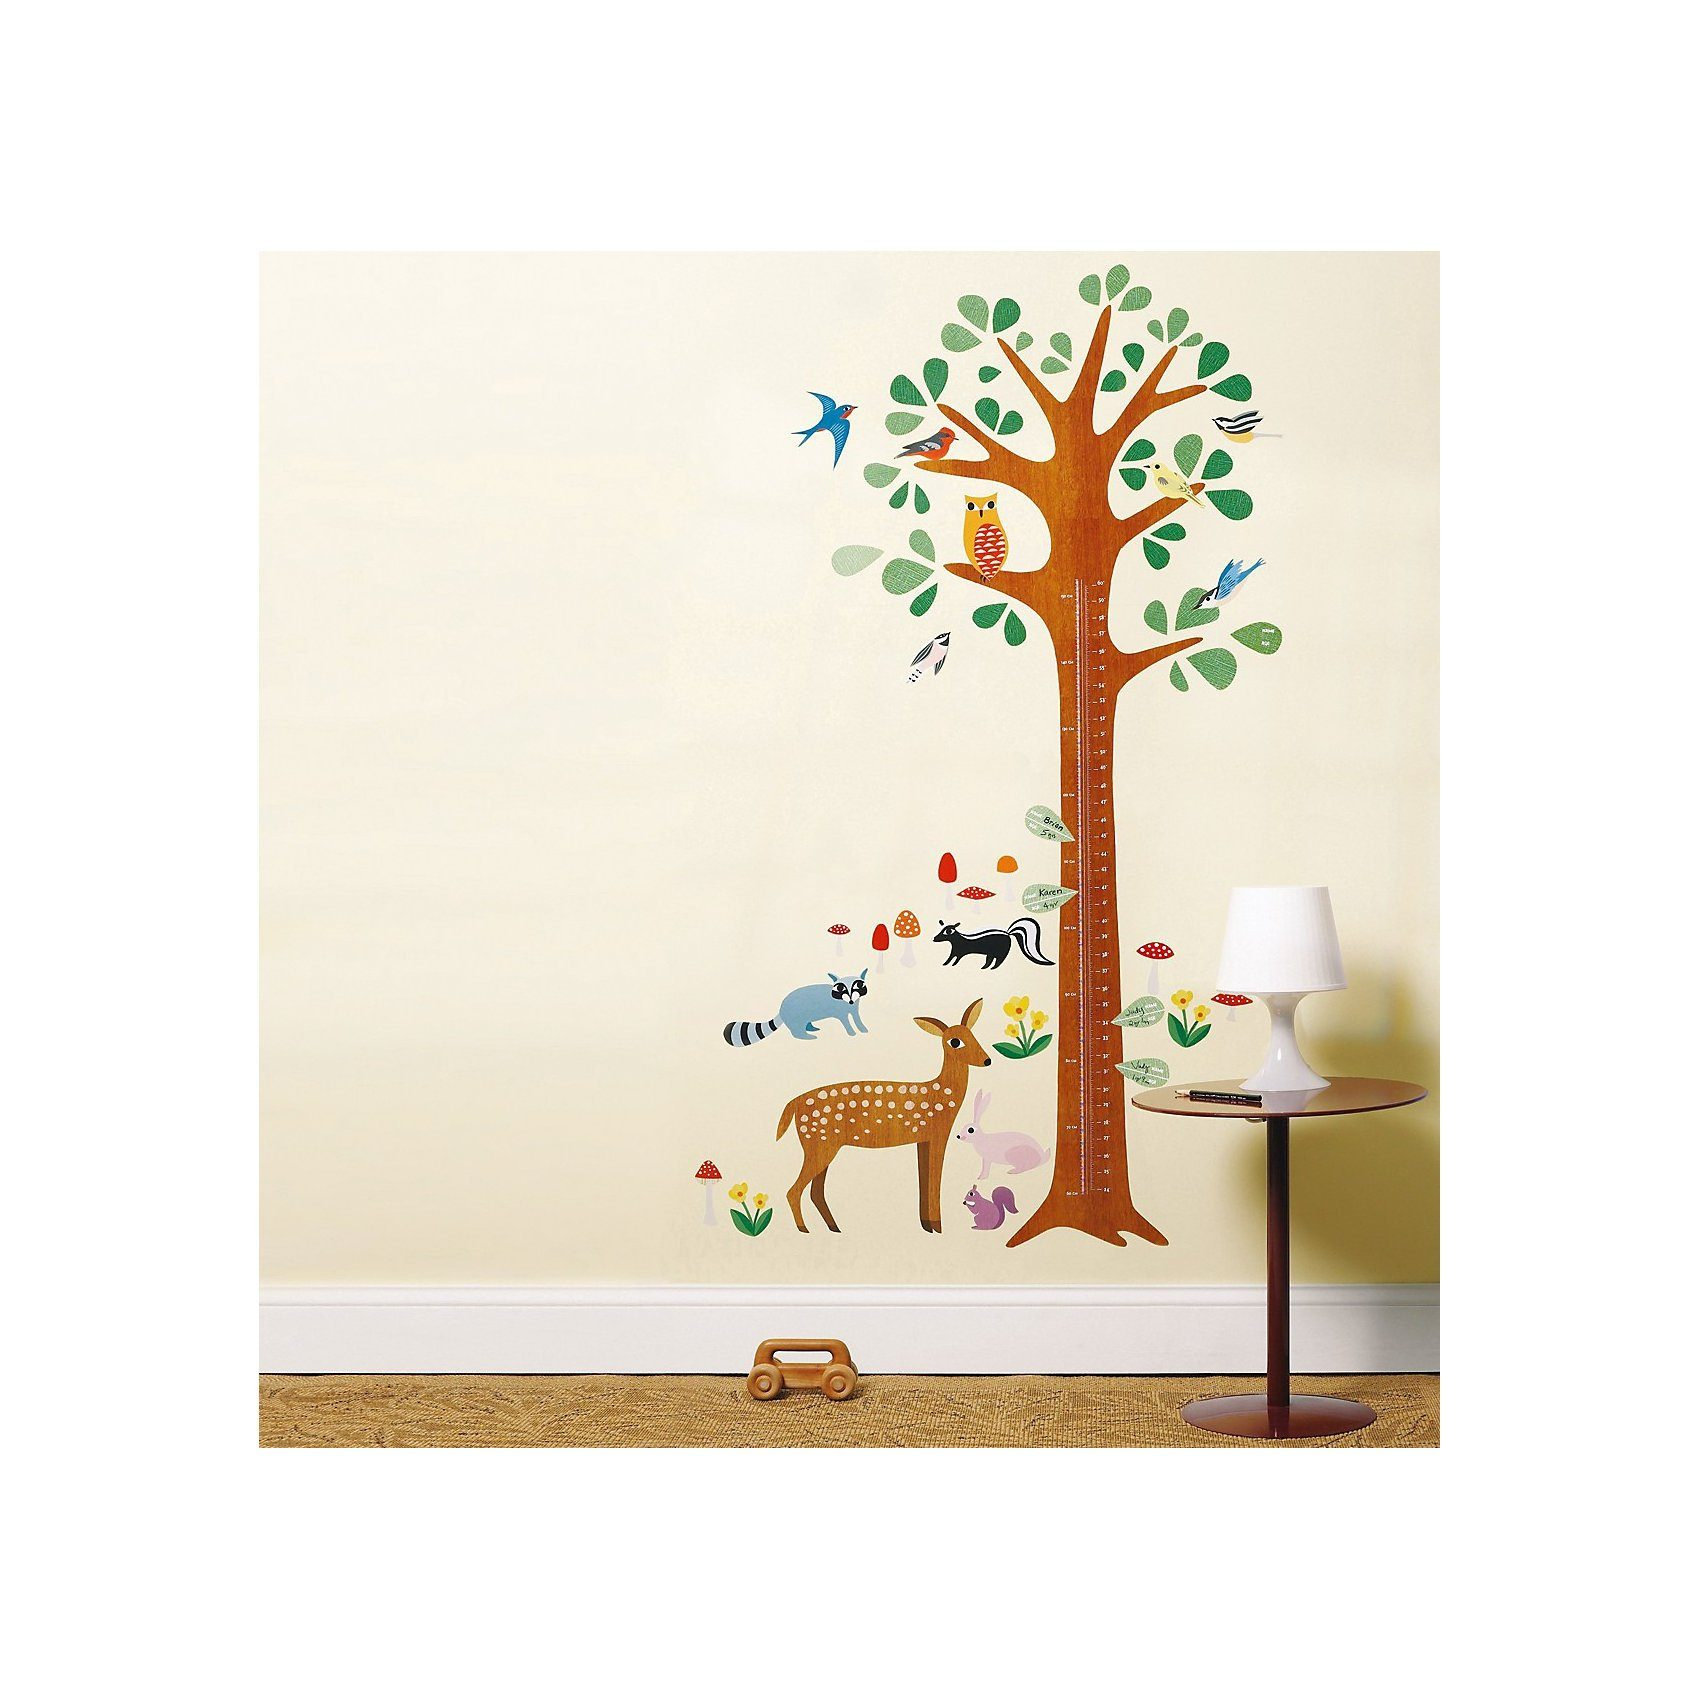 WALLIES Wandsticker Messlatte Wald